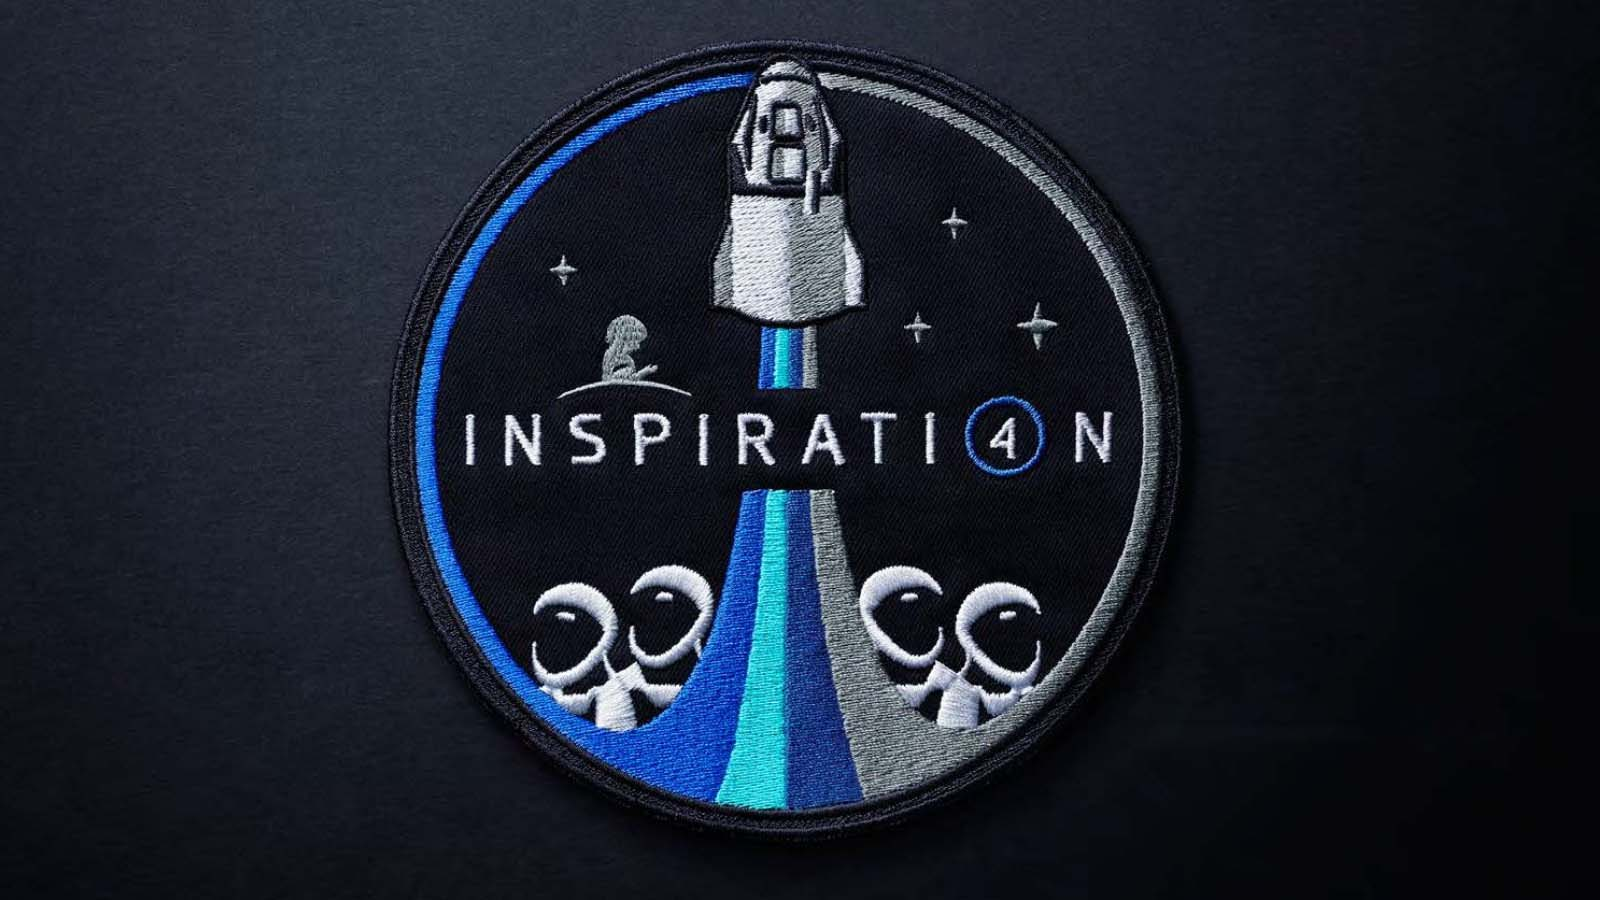 The Inspiration4 Mission Patch Against A Dark Gray Background